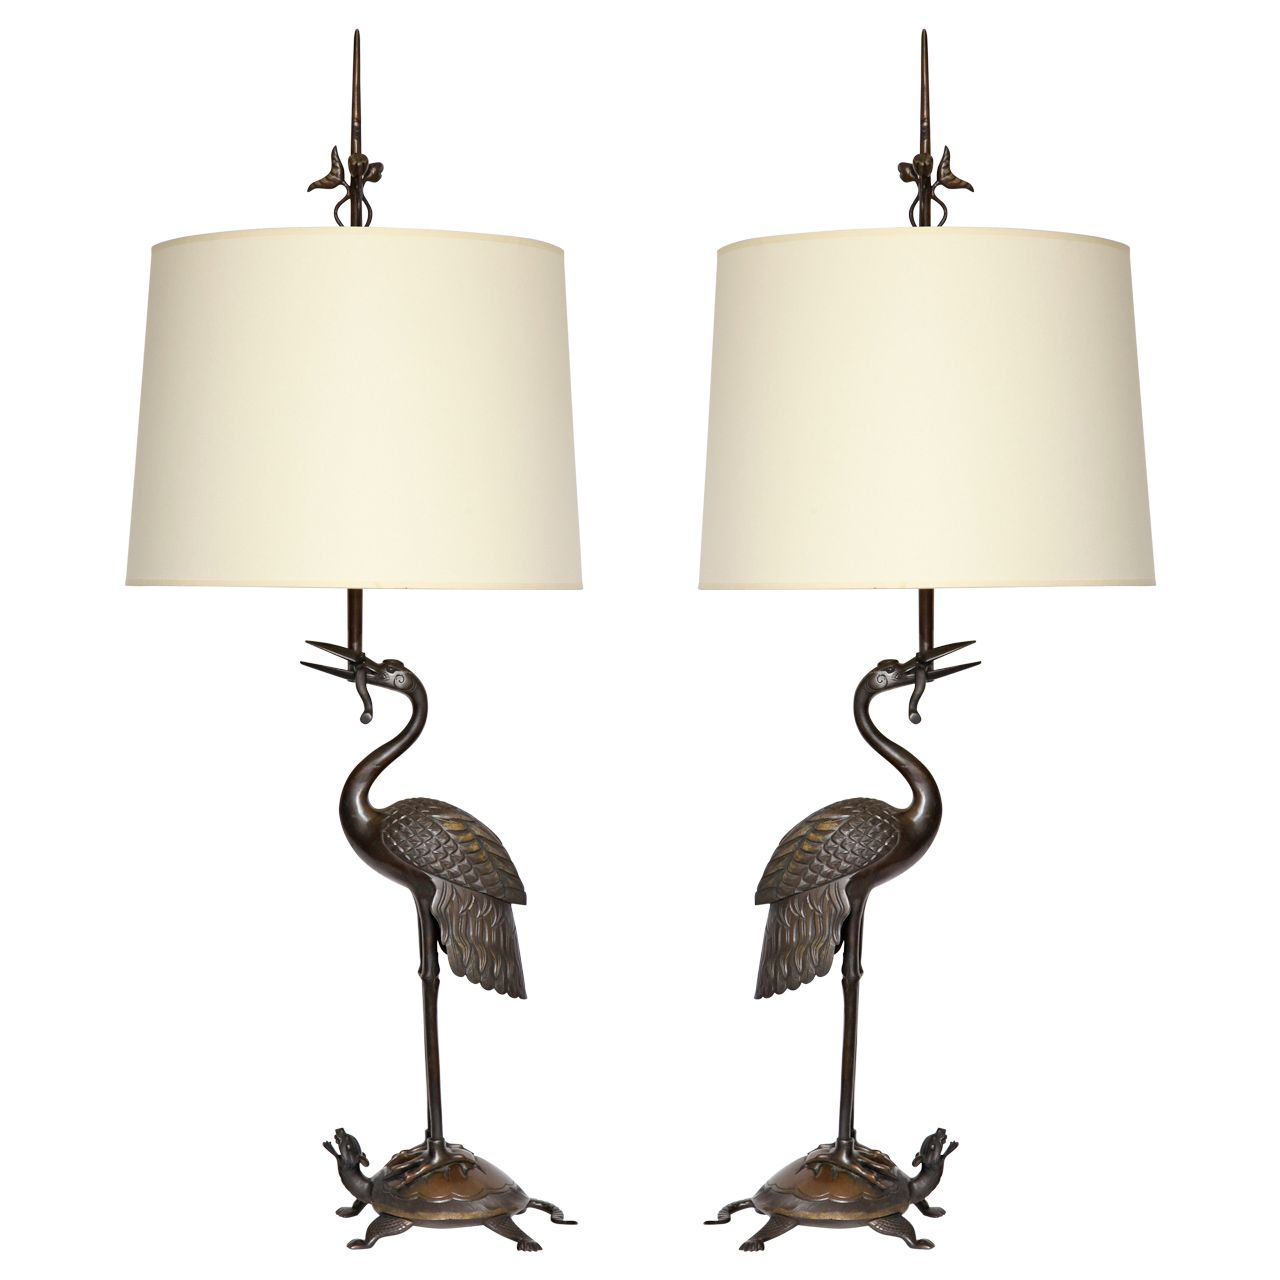 A Pair of 1920's Japanese bronze Table Lamps   From a unique collection of antique and modern table lamps at http://www.1stdibs.com/furniture/lighting/table-lamps/